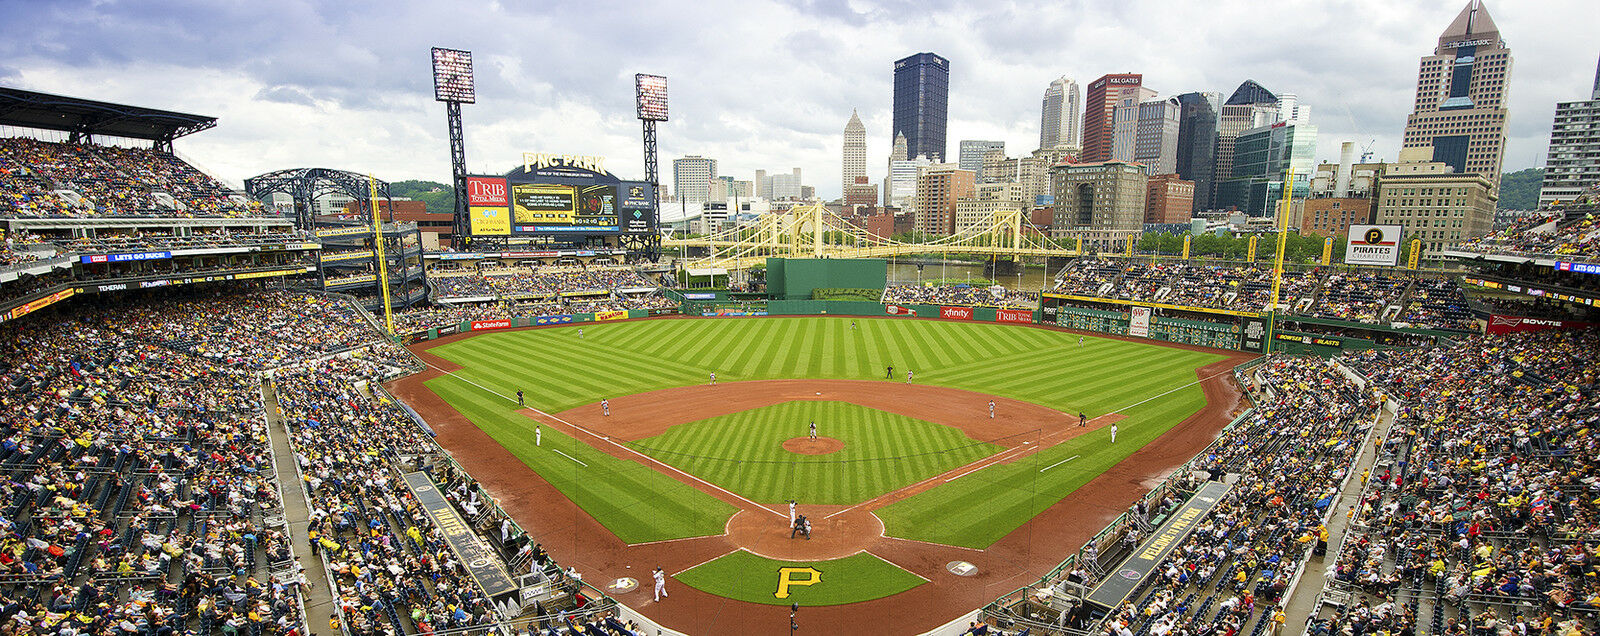 Cincinnati Reds at Pittsburgh Pirates